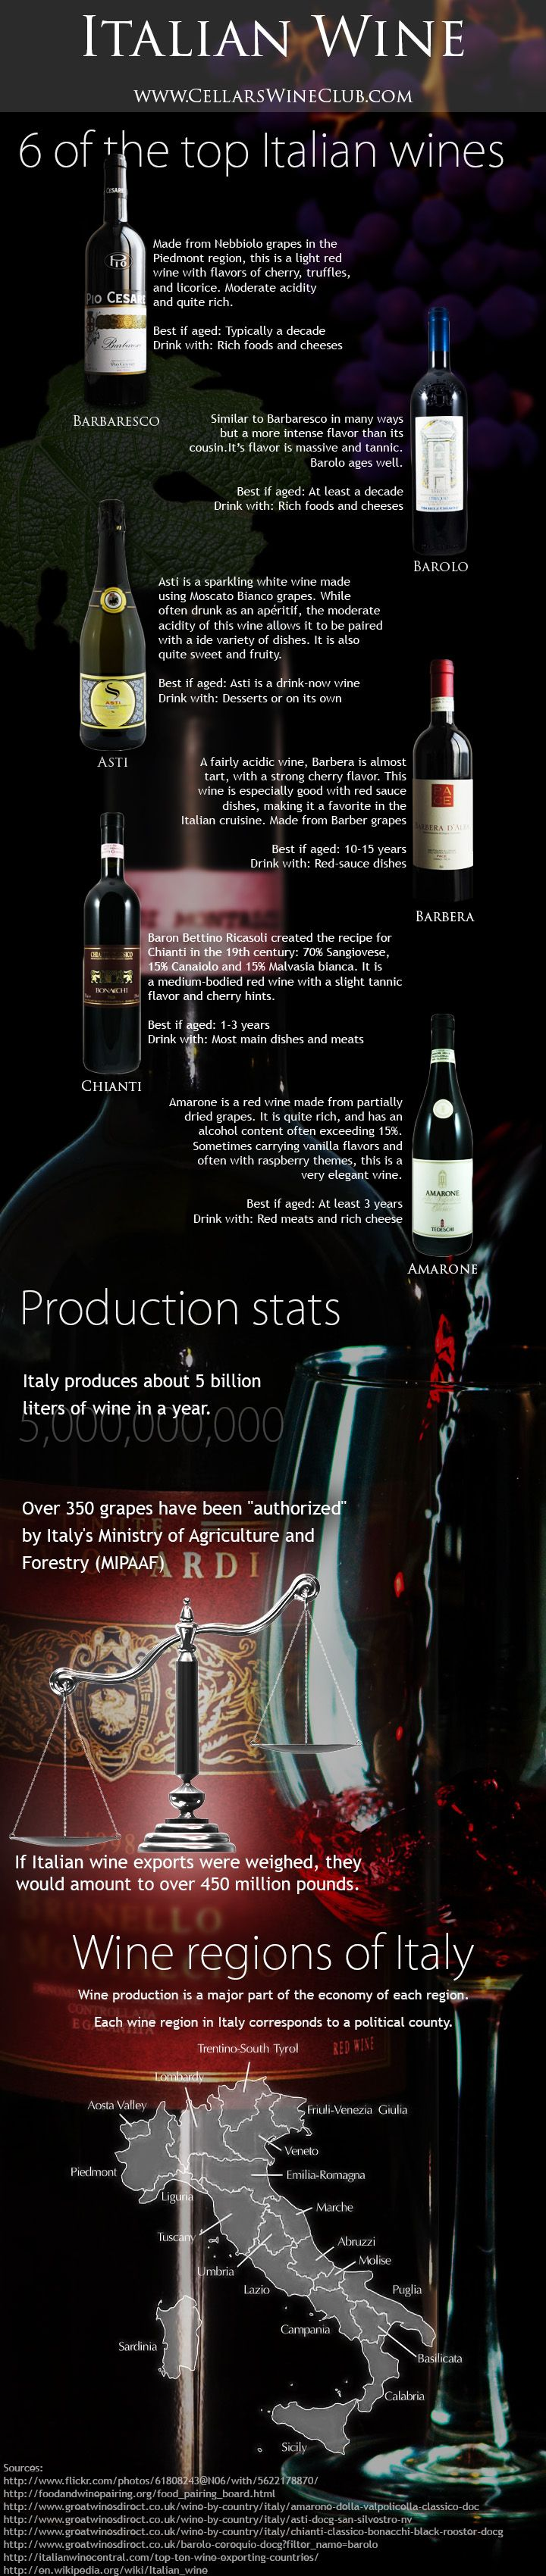 Six of the best Italian wines, facts about Italian wine, and a map of Italy's wine regions in a regal infographic.